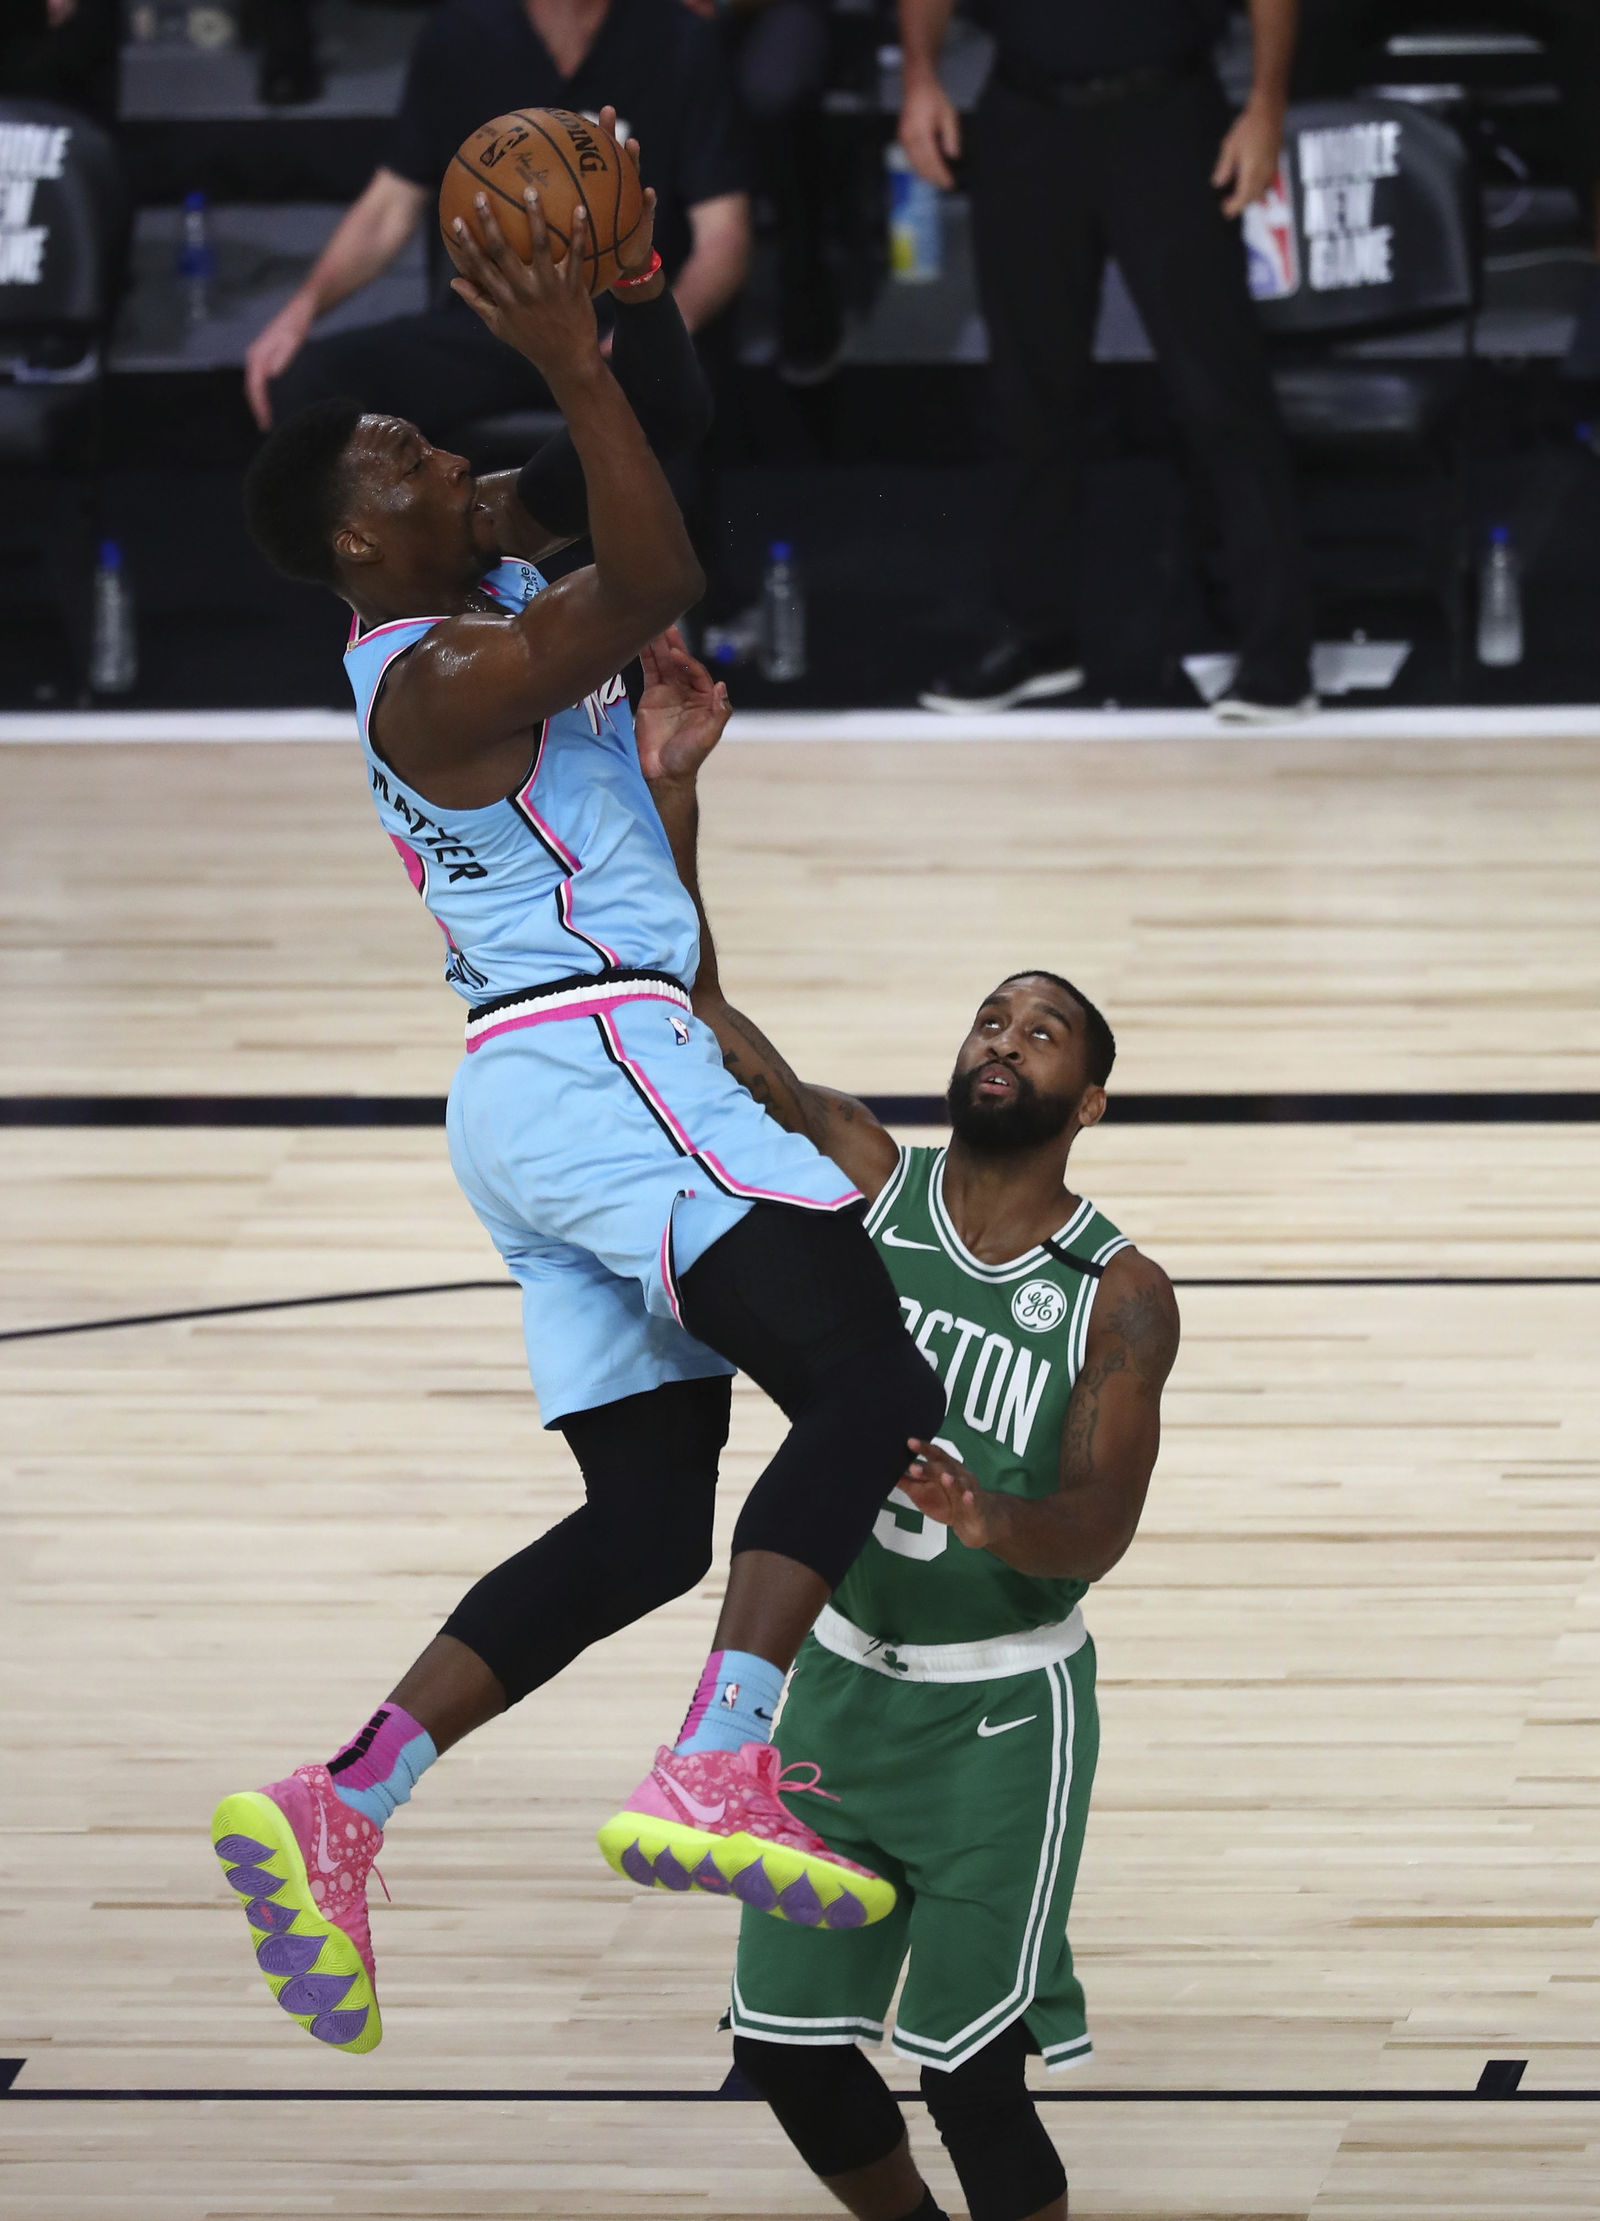 Miami Heat forward Bam Adebayo (13) is fouled as he scores against Boston Celtics guard Brad Wanamaker (9)during the second half of an NBA basketball game Tuesday, Aug. 4, 2020, in Lake Buena Vista, Fla. (Kim Klement/Pool Photo via AP)